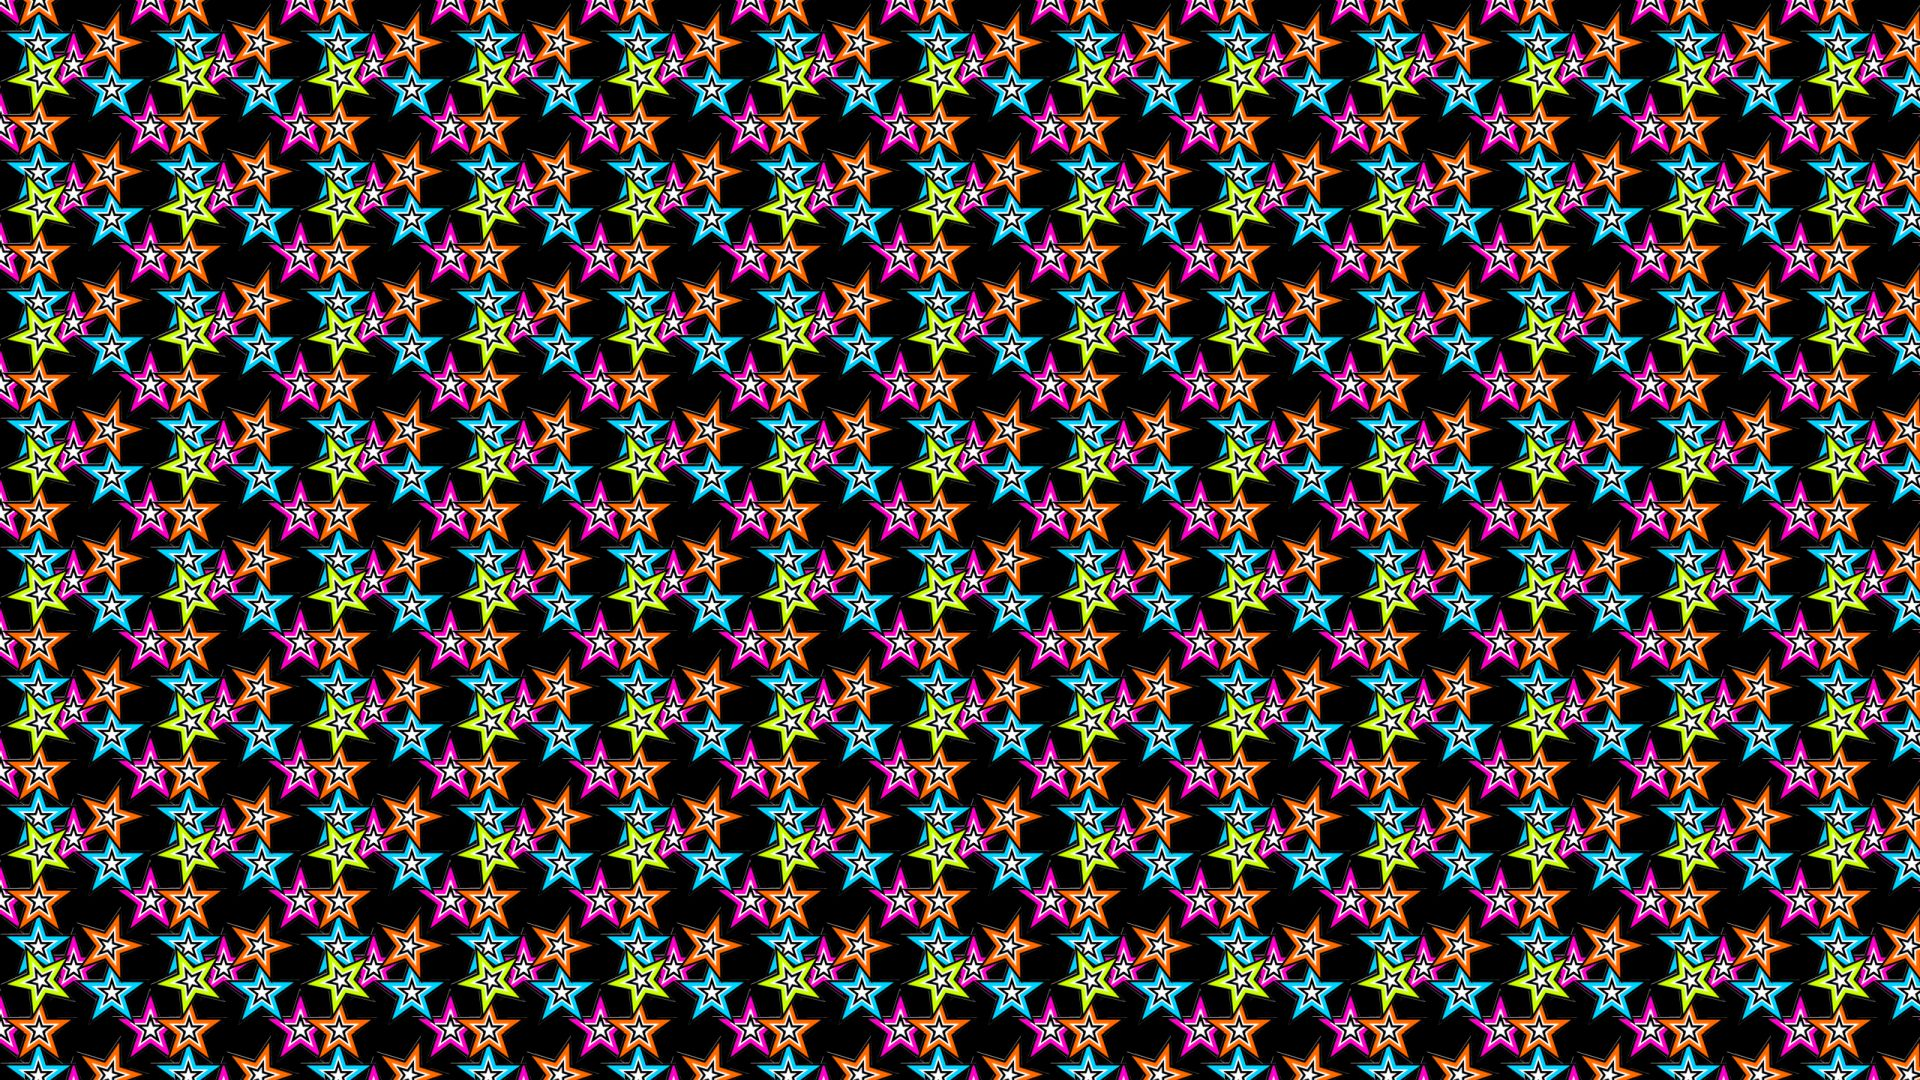 Holographic full hd 1080p wallpaper